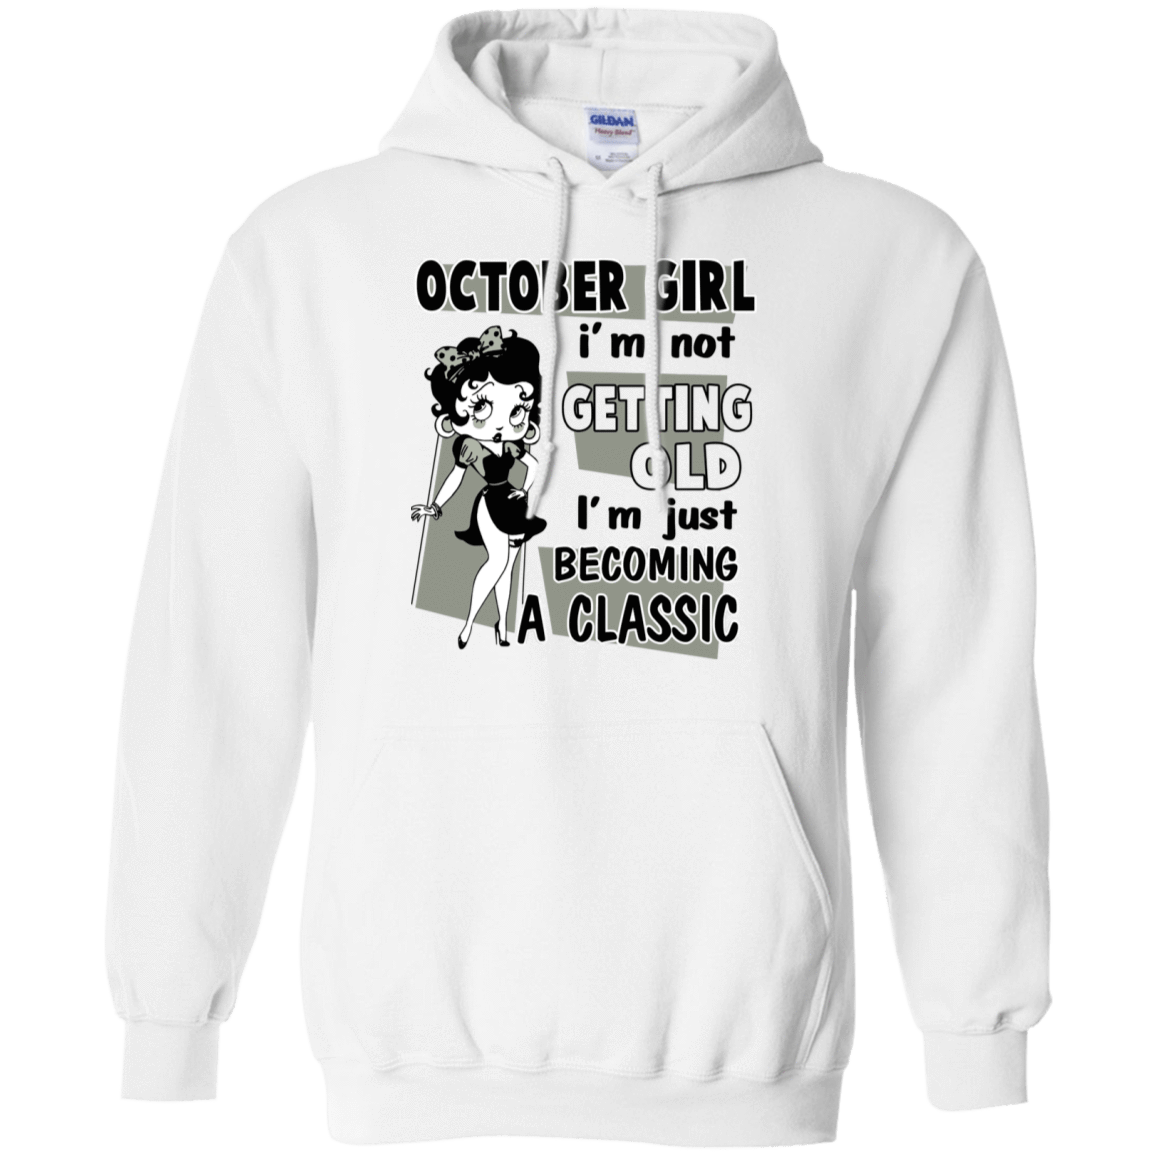 October Girl I'm Not Getting Old I'm Just Becoming A Classic T-Shirts, Hoodies 541-4744-77495227-23183 - Tee Ript